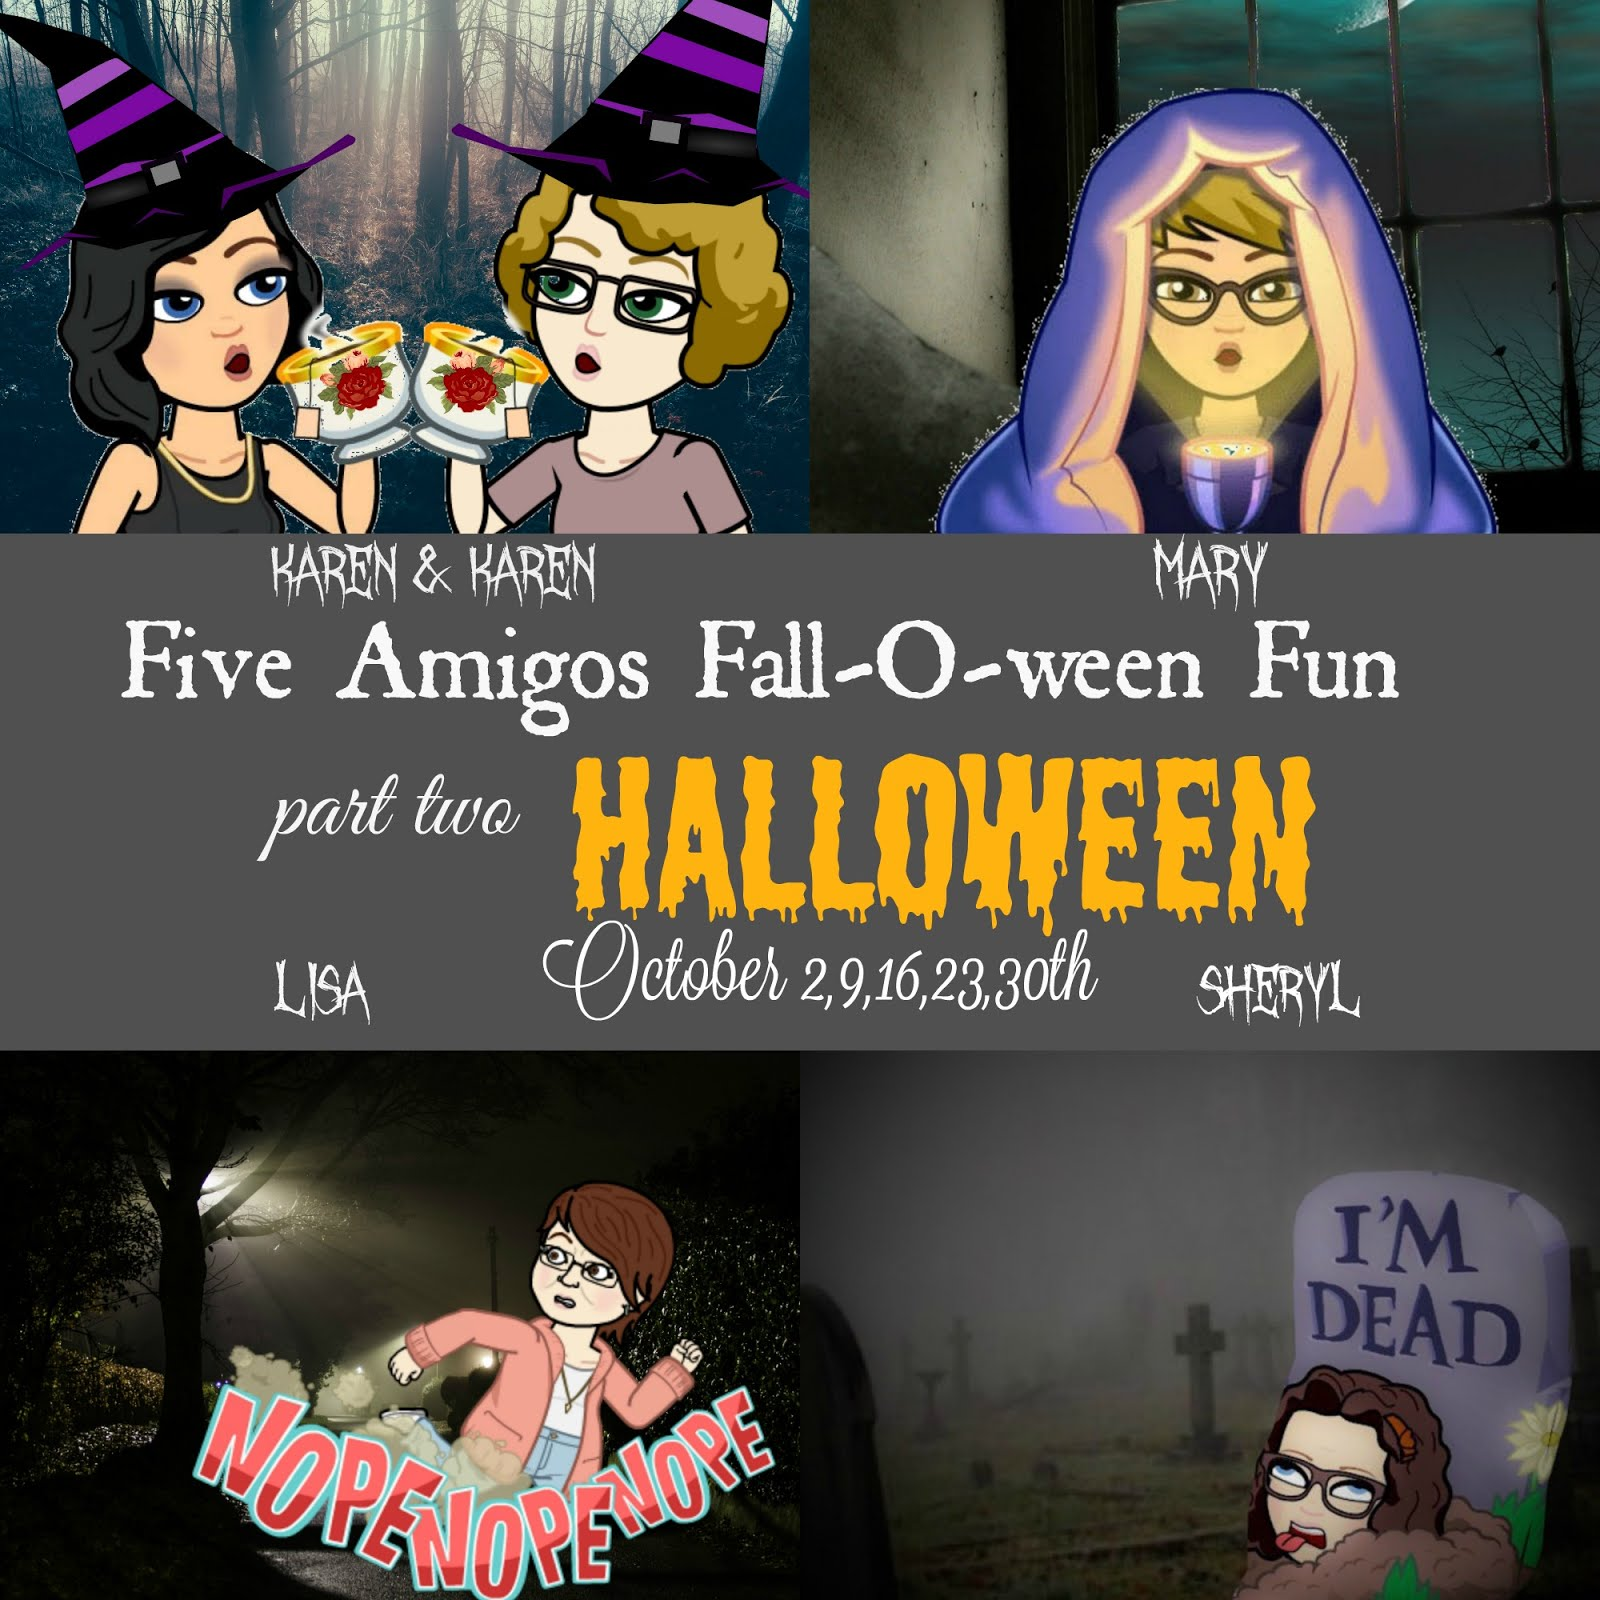 Monday Fall-O-ween Fun Continues in October